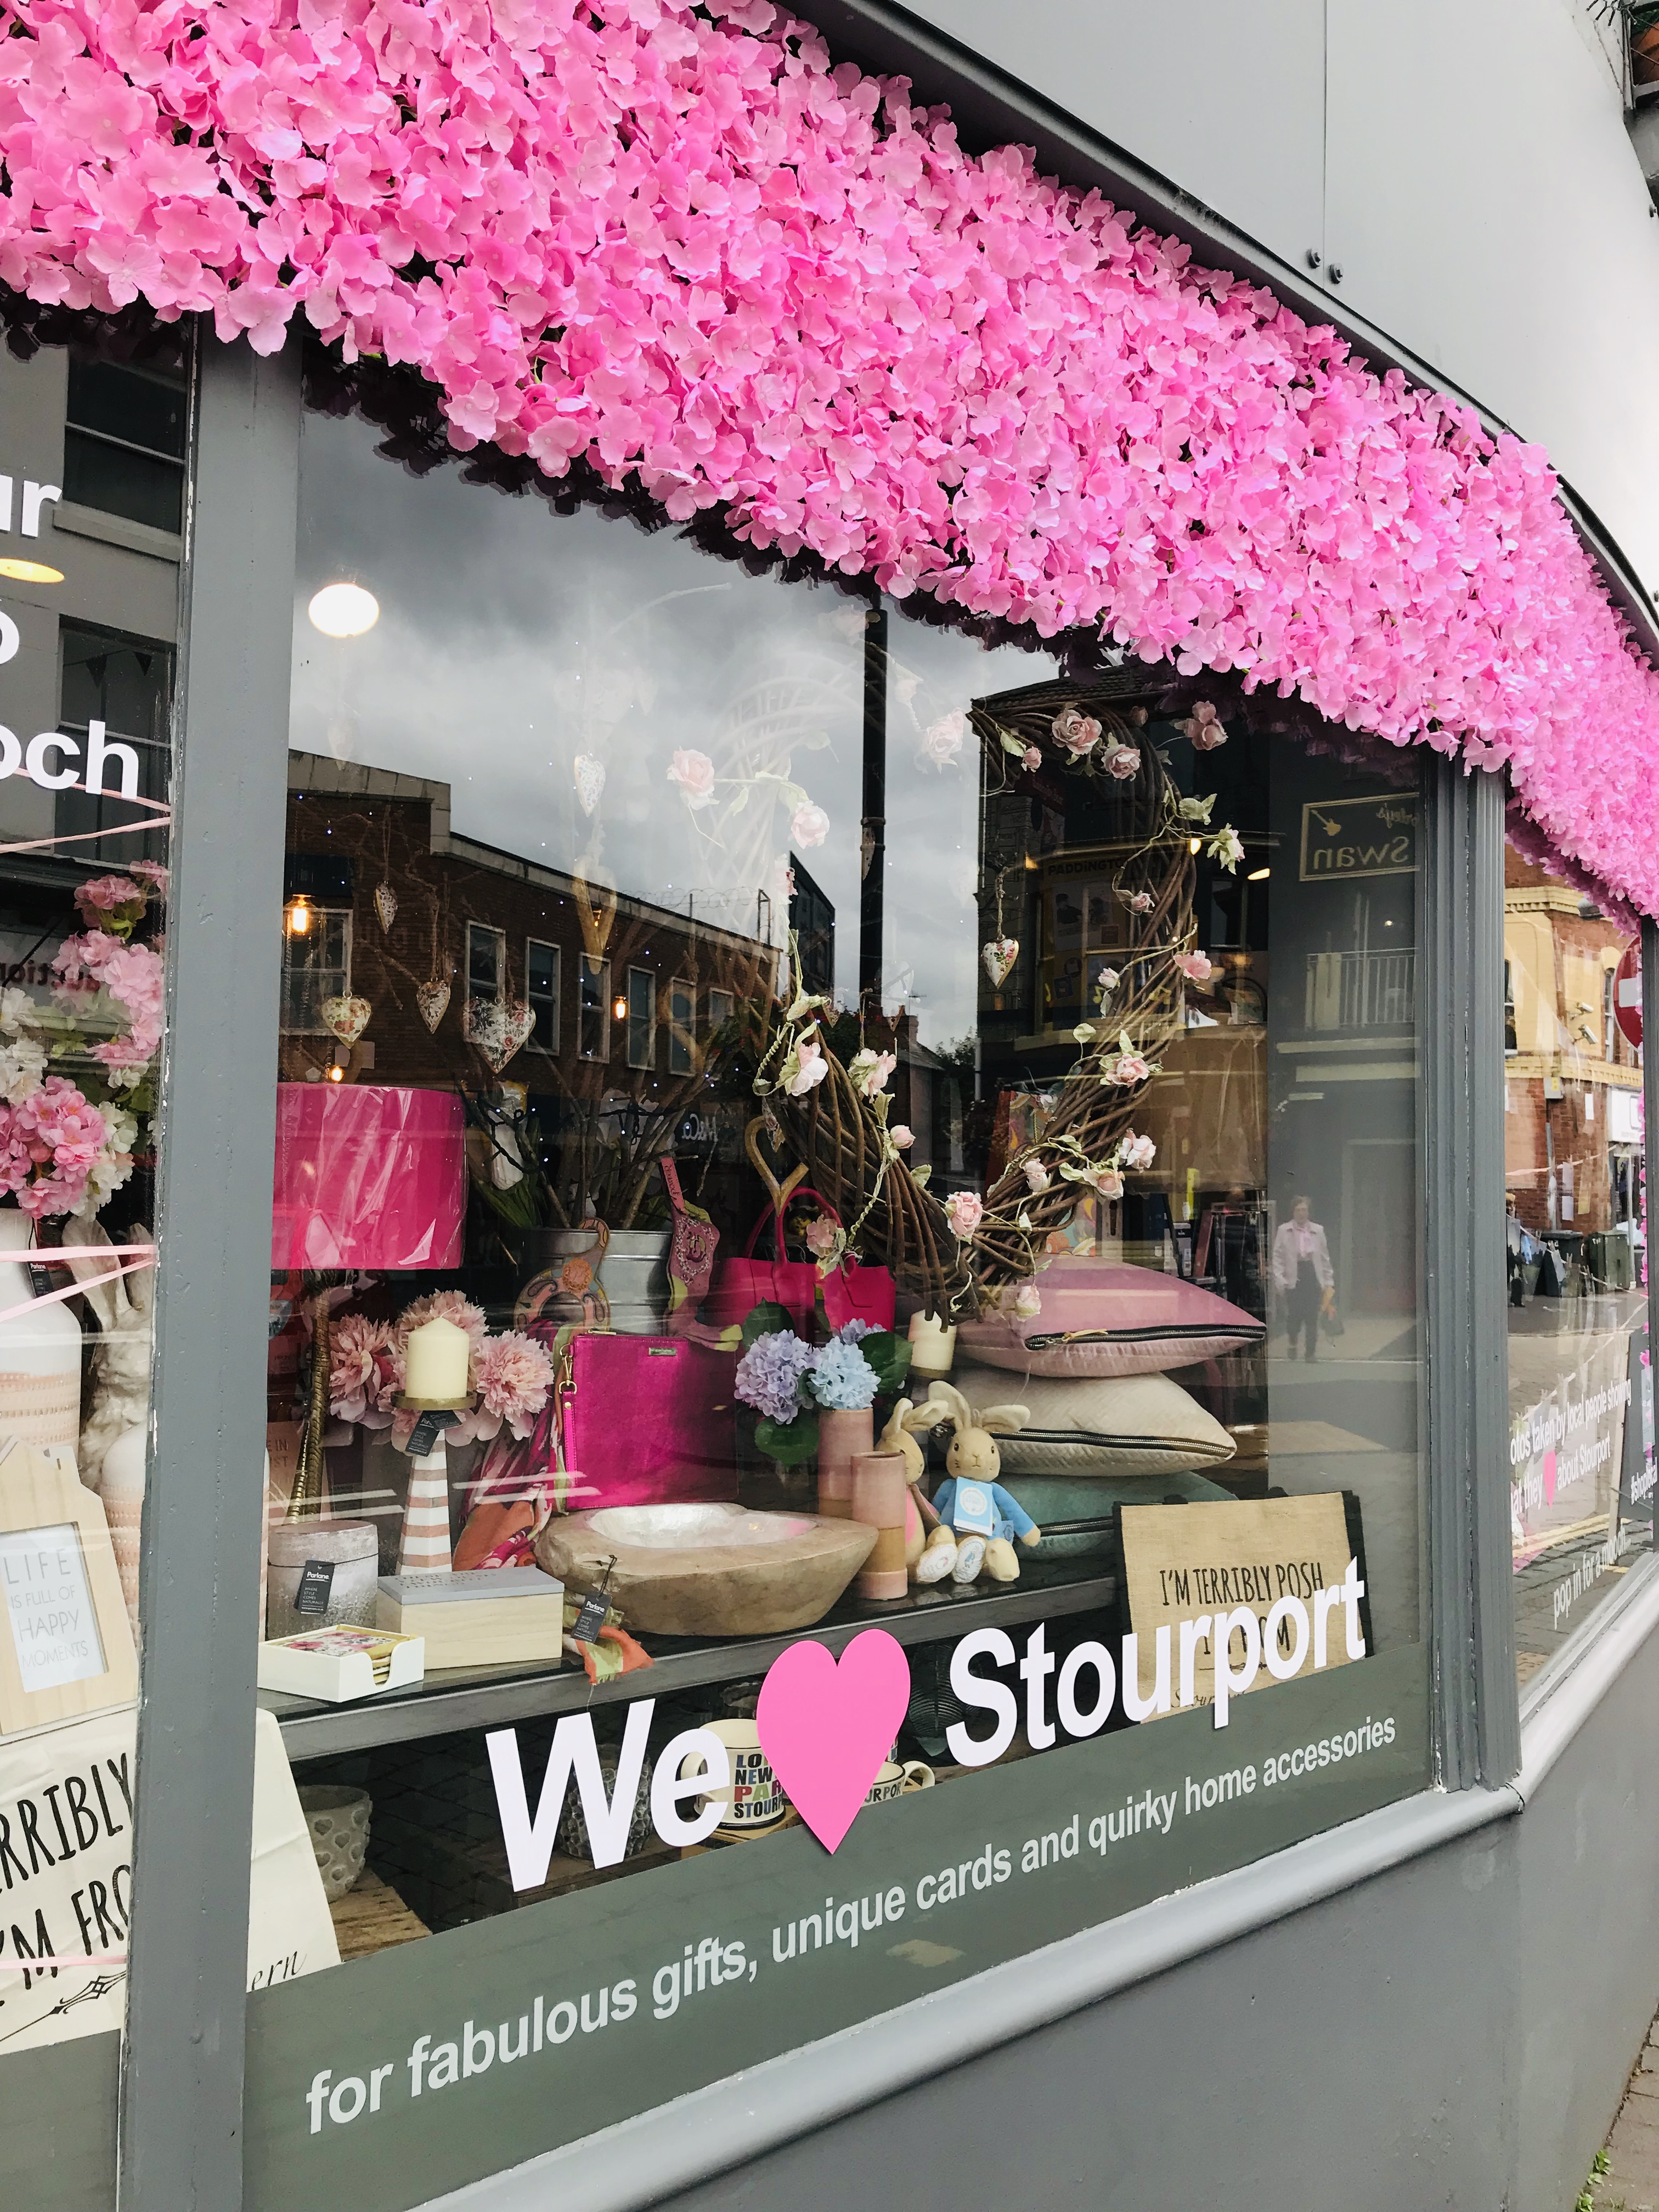 Above: Mooch launched a 'We love Stourport' initiative in its windows.